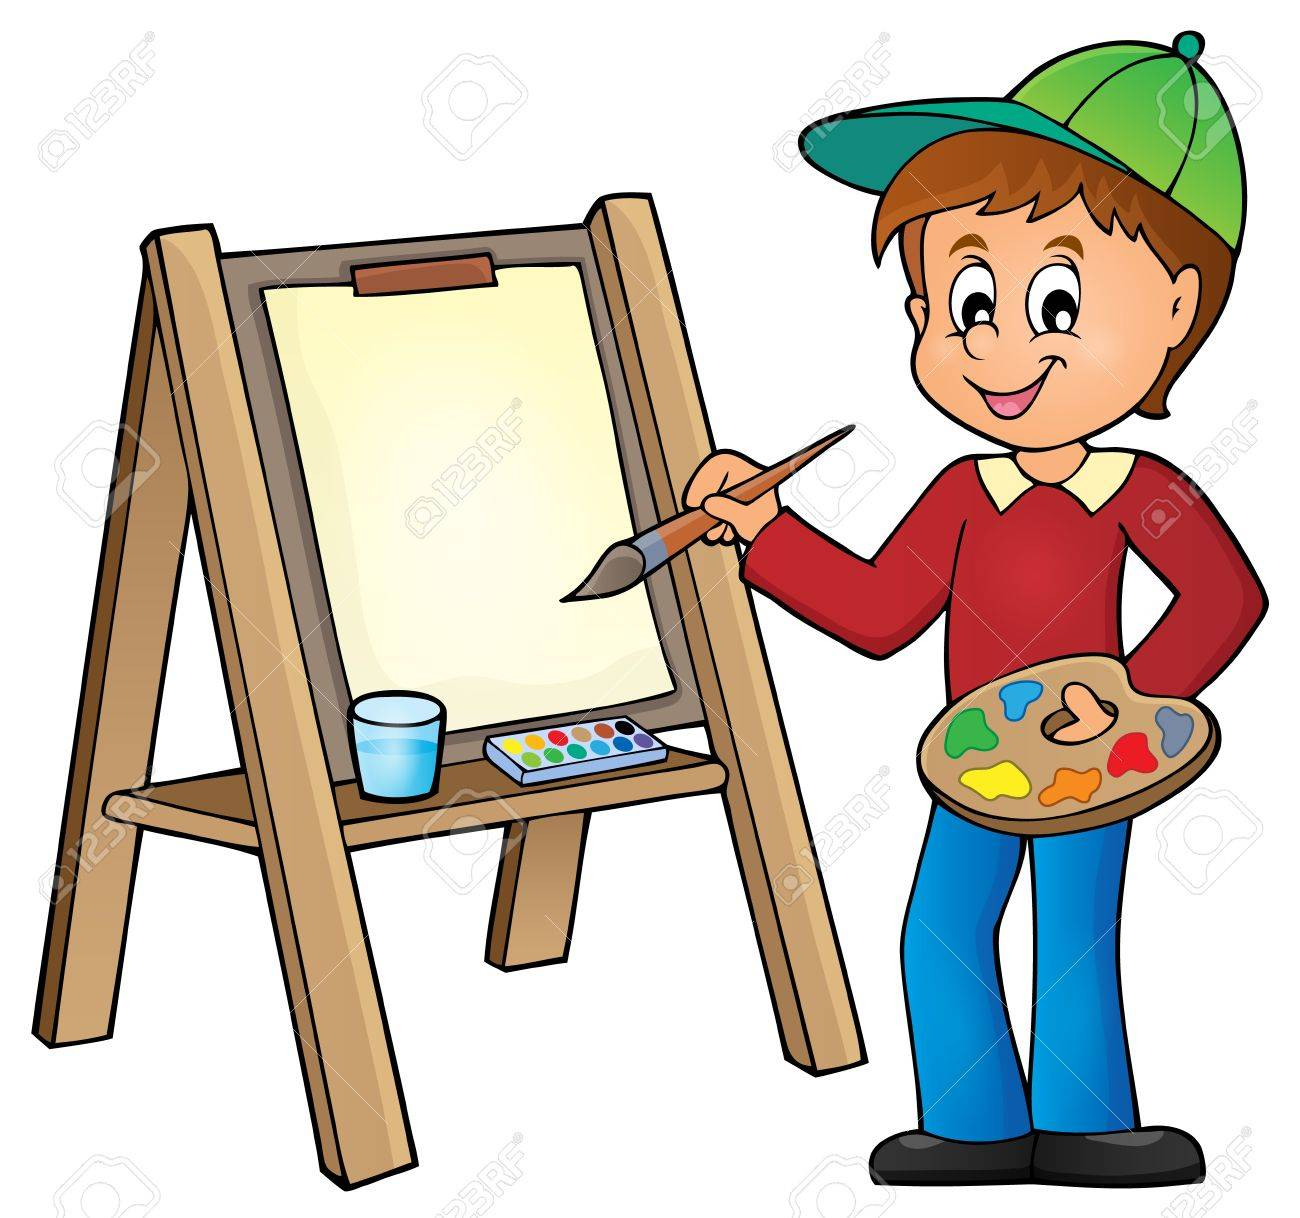 Boy painting on canvas 1.